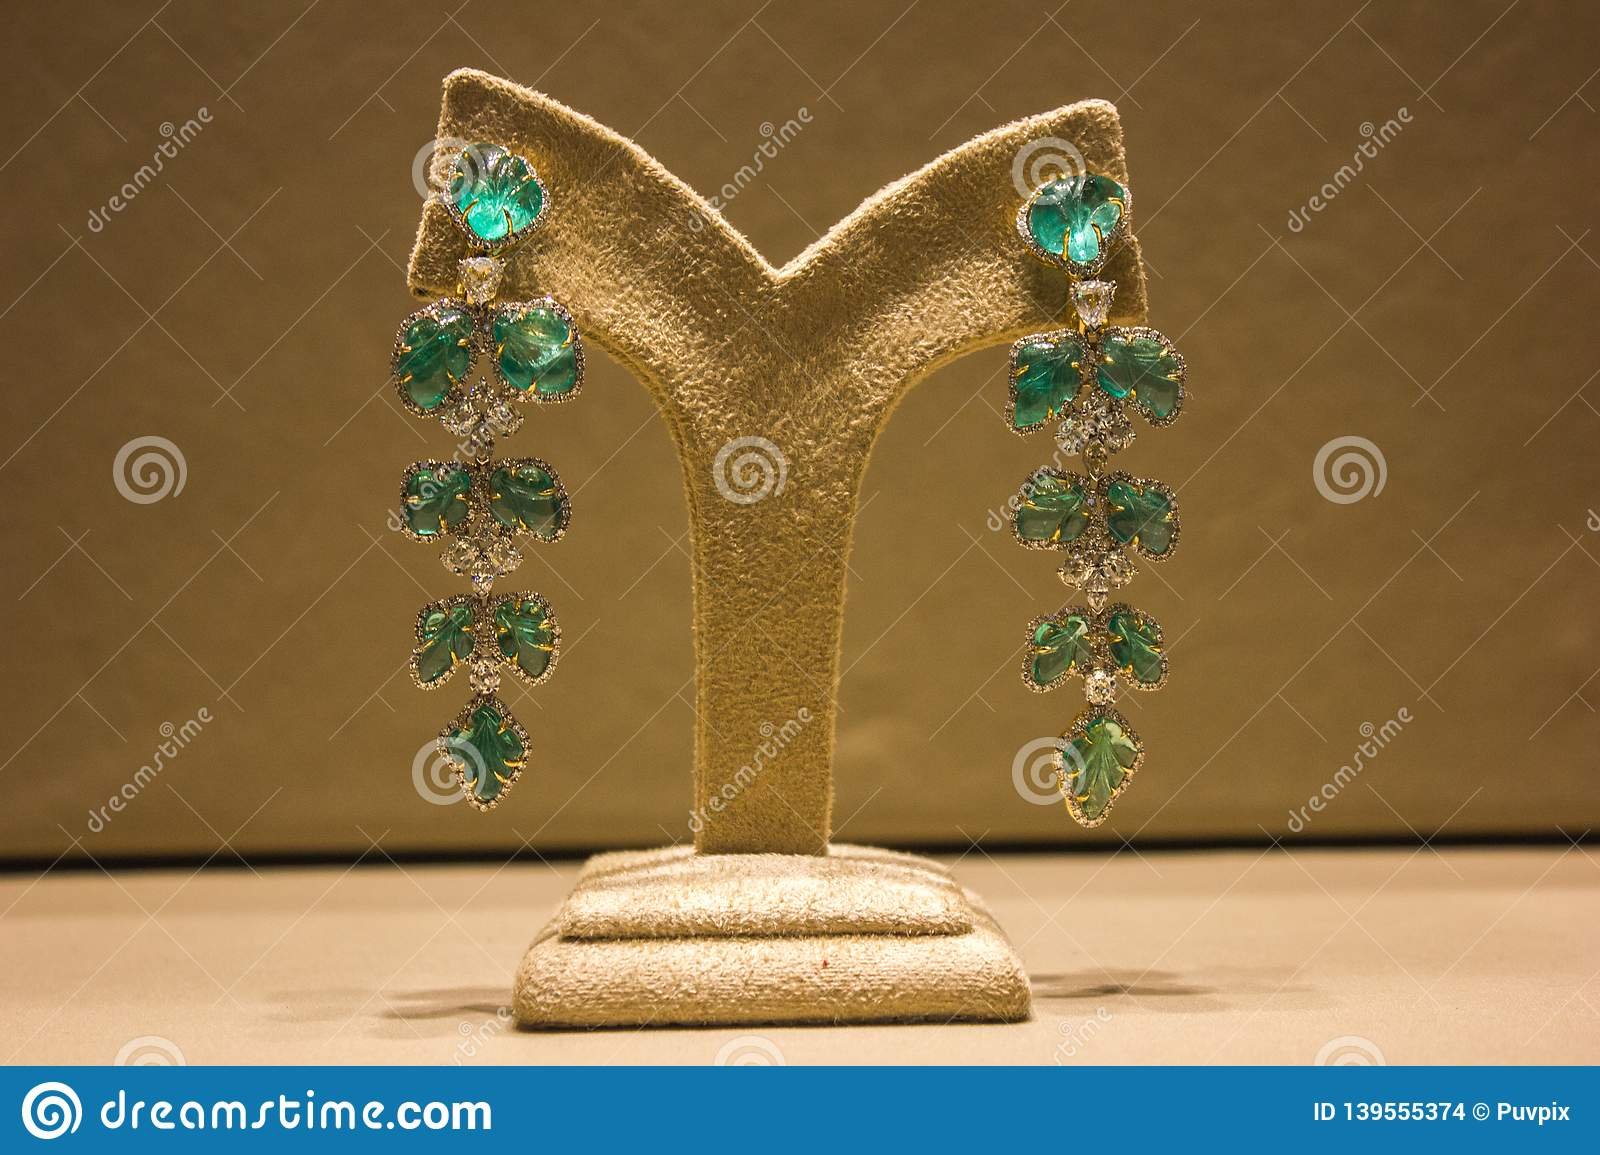 Turquoise earrings ,pair of long ones with white stones displayed in a velvet stand with a beige velvety background